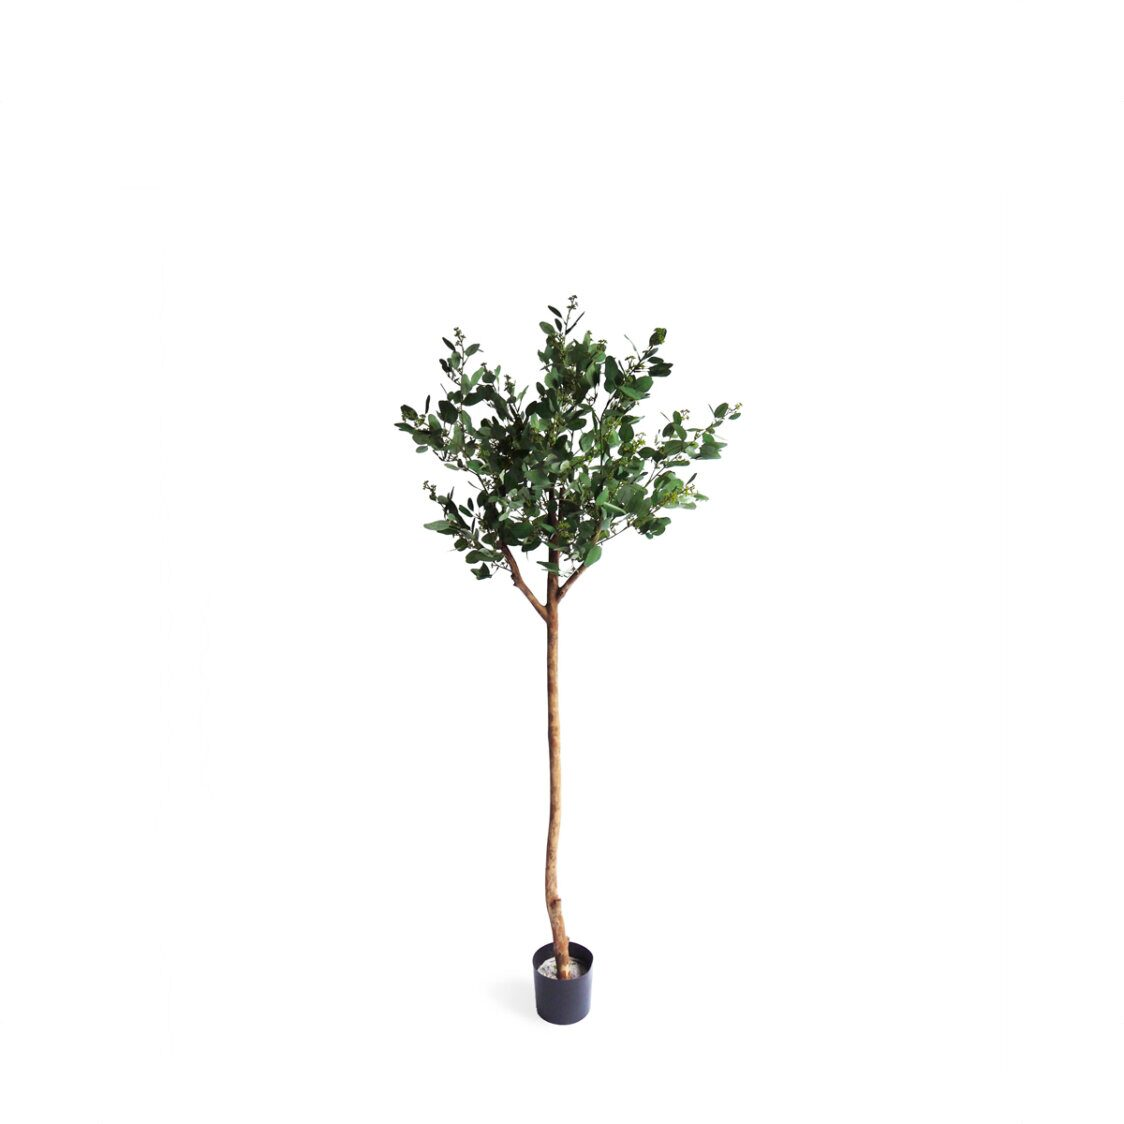 Pollyanna Poppel Ball Potted Tree with Beans